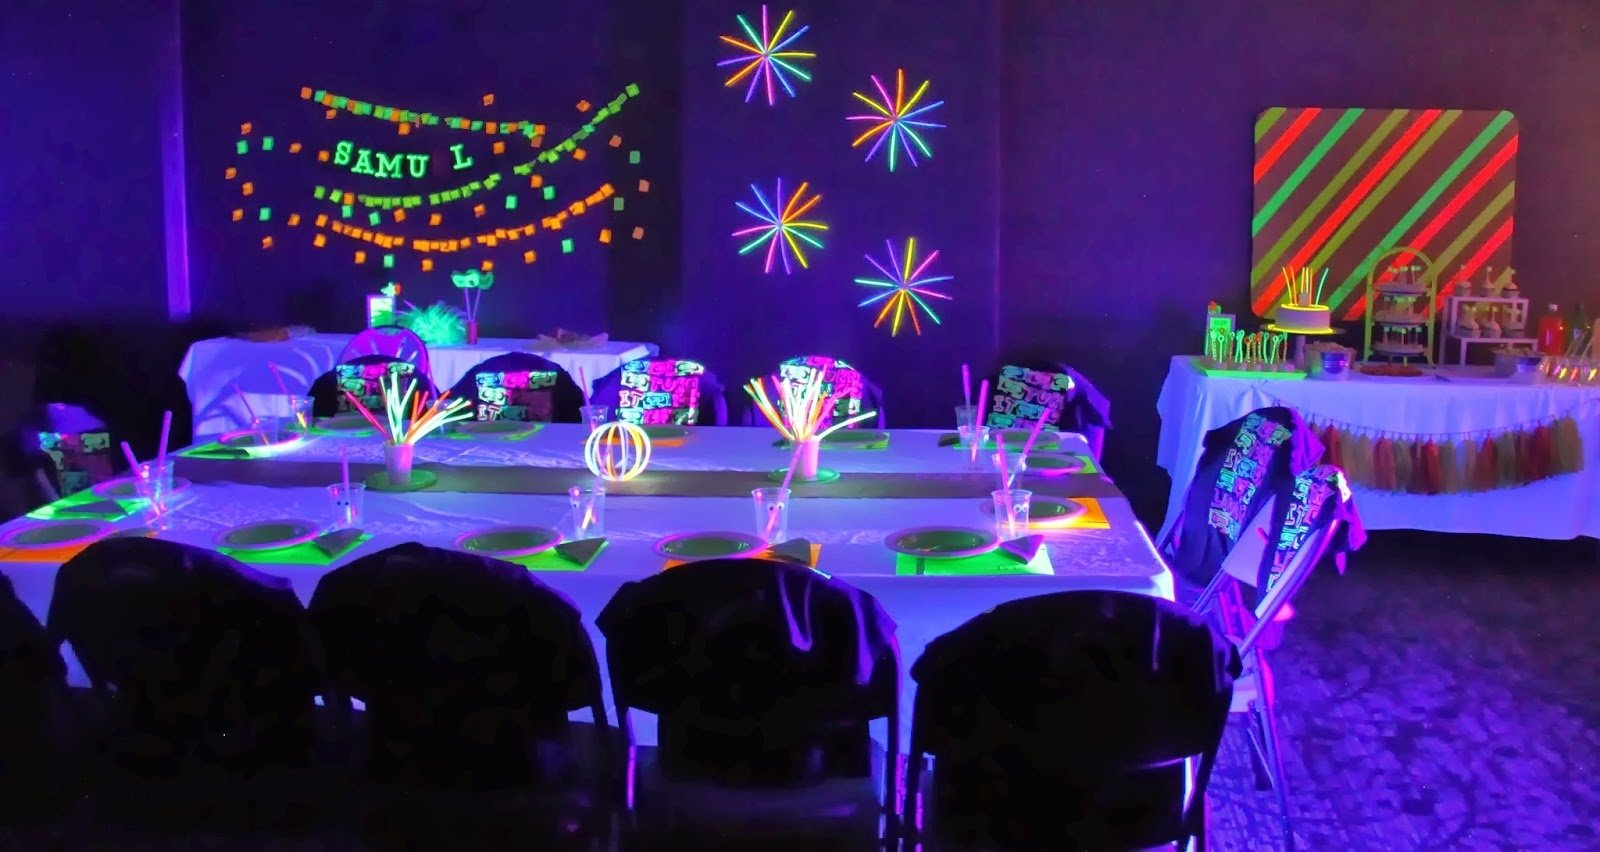 neon party ideas for 13 year olds | parties & birthday party ideas